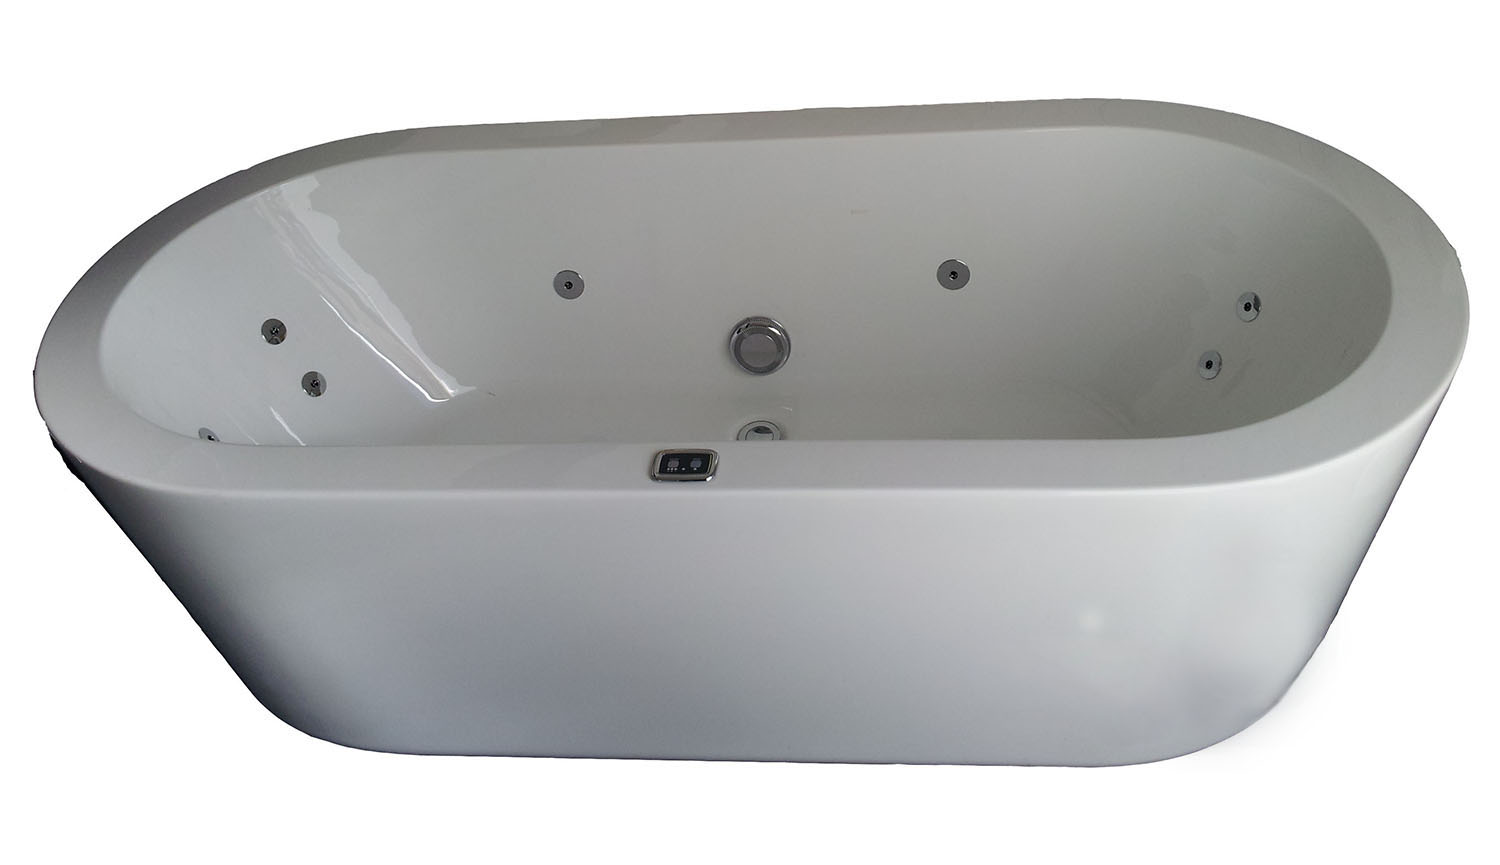 Enza Spa Bath 1775 x 805 x 555